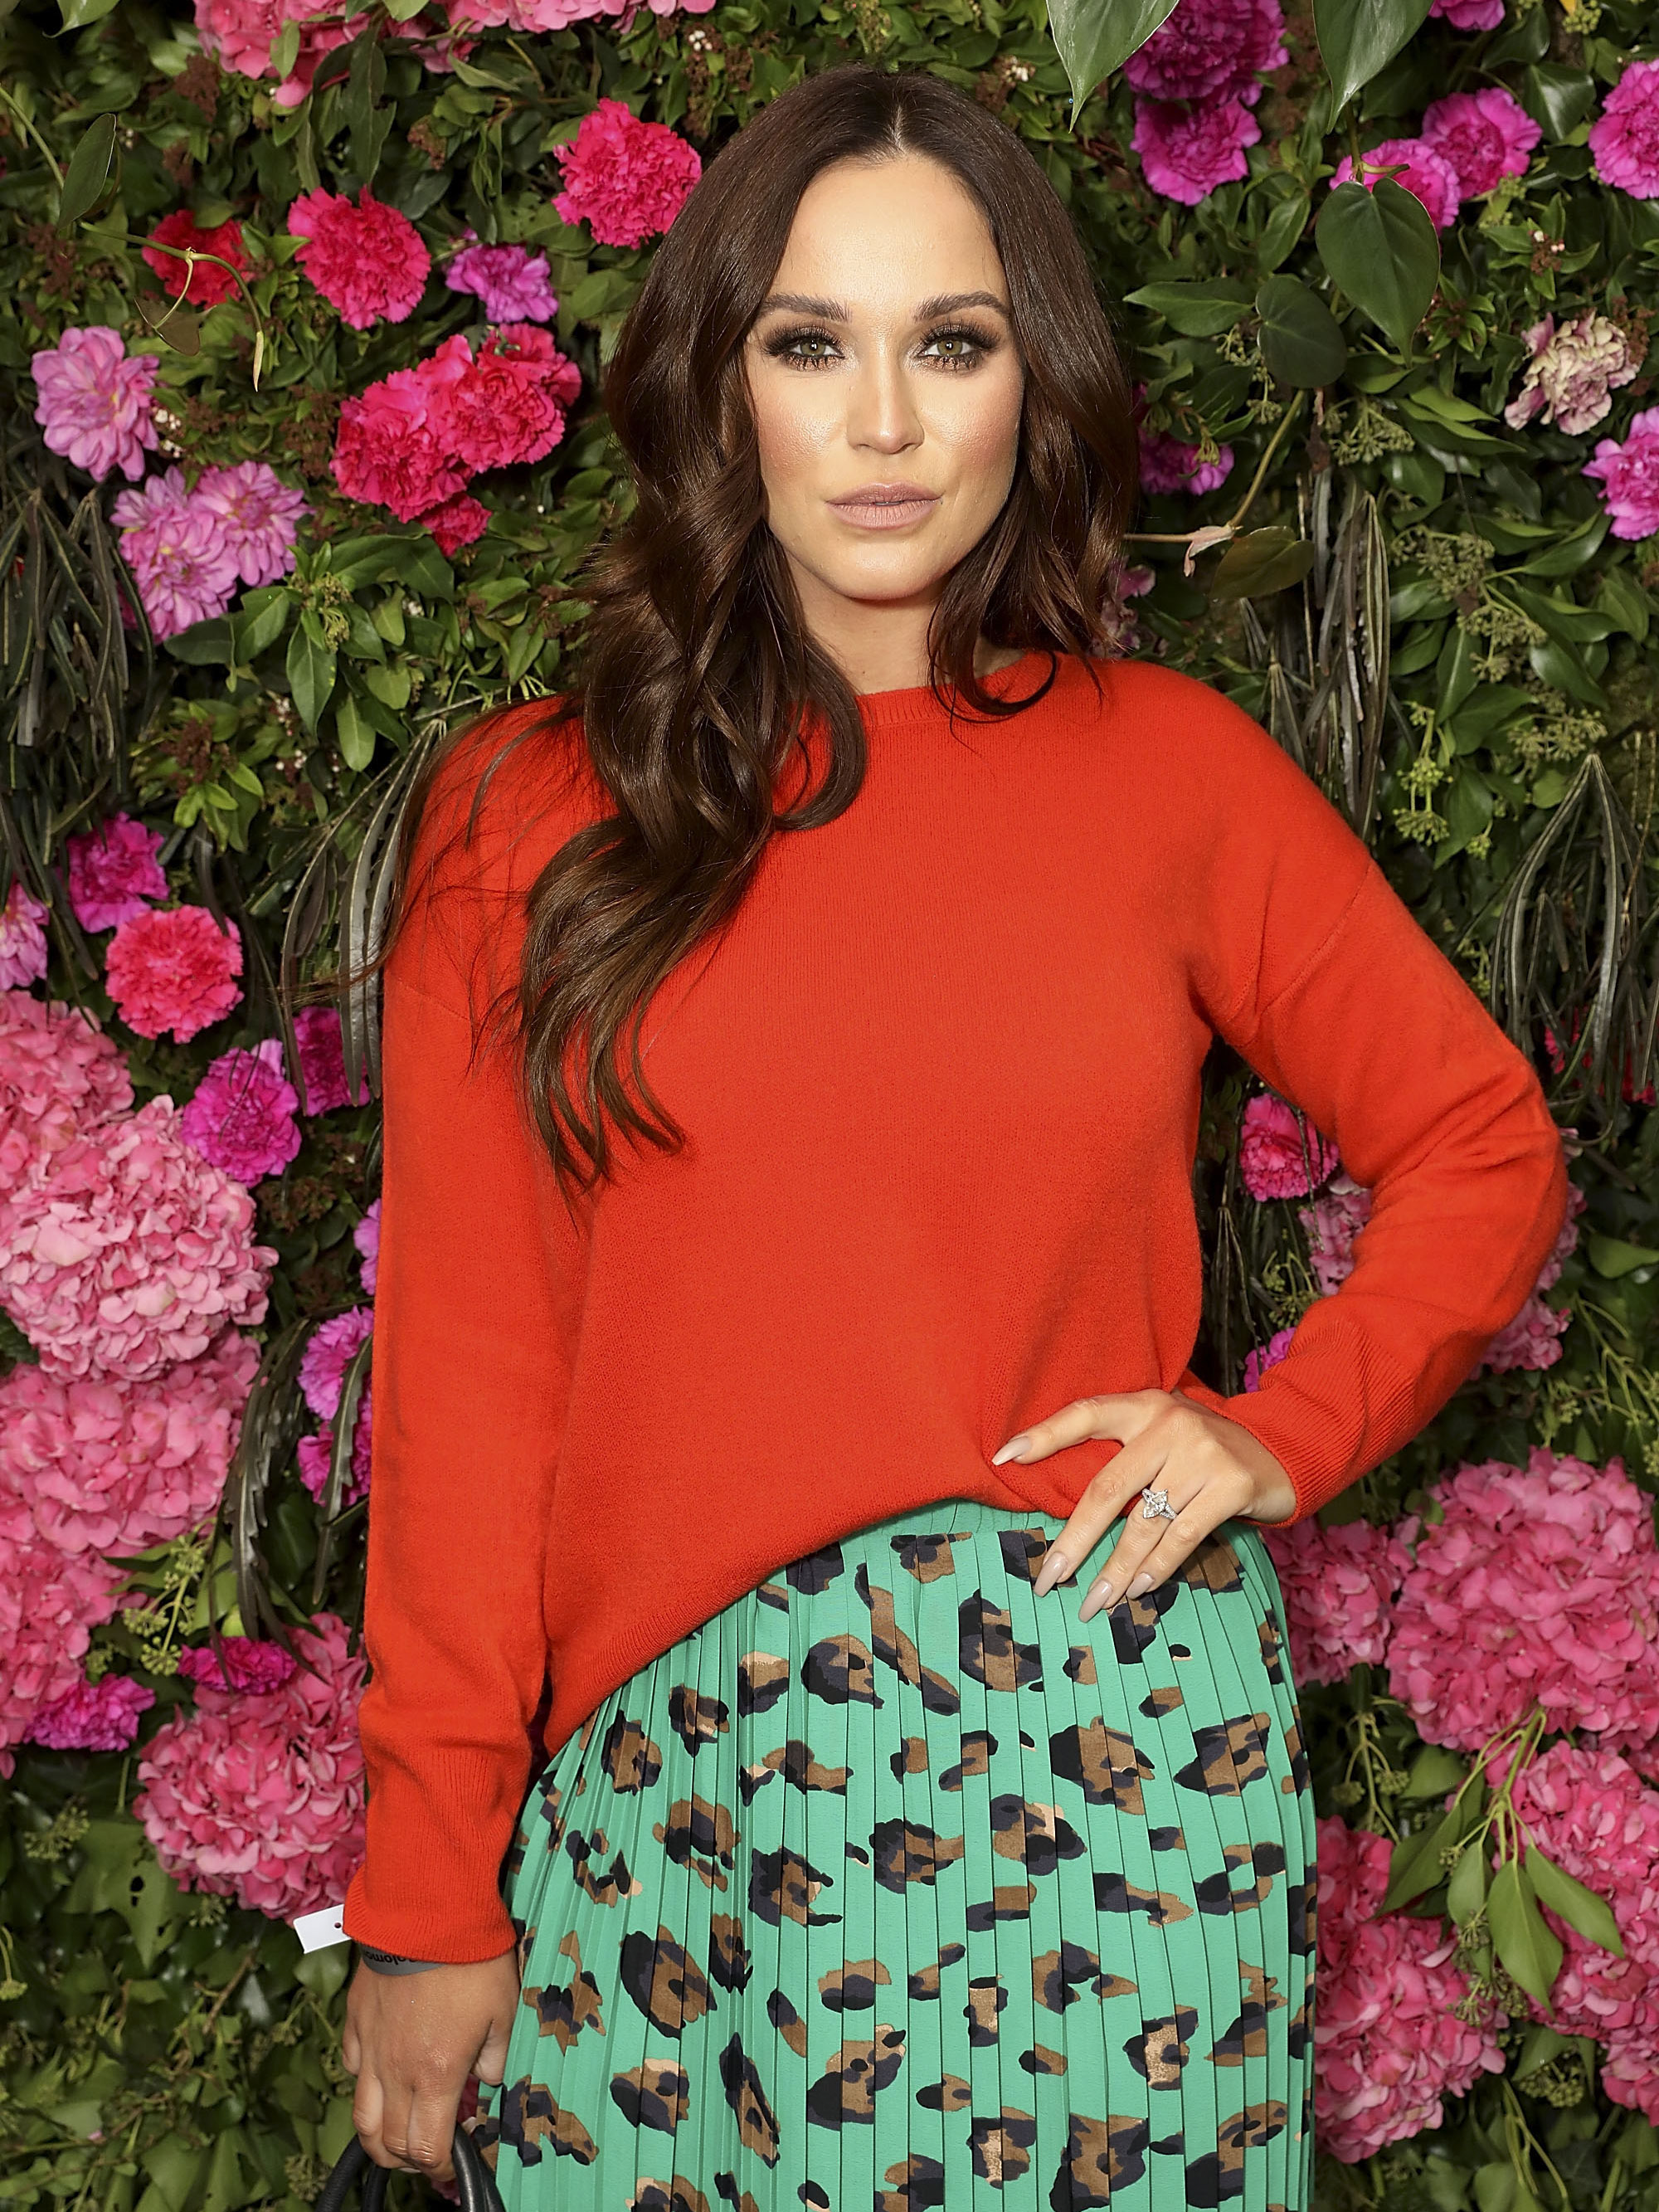 Vicky Pattison admits her weight is impacting her confidence